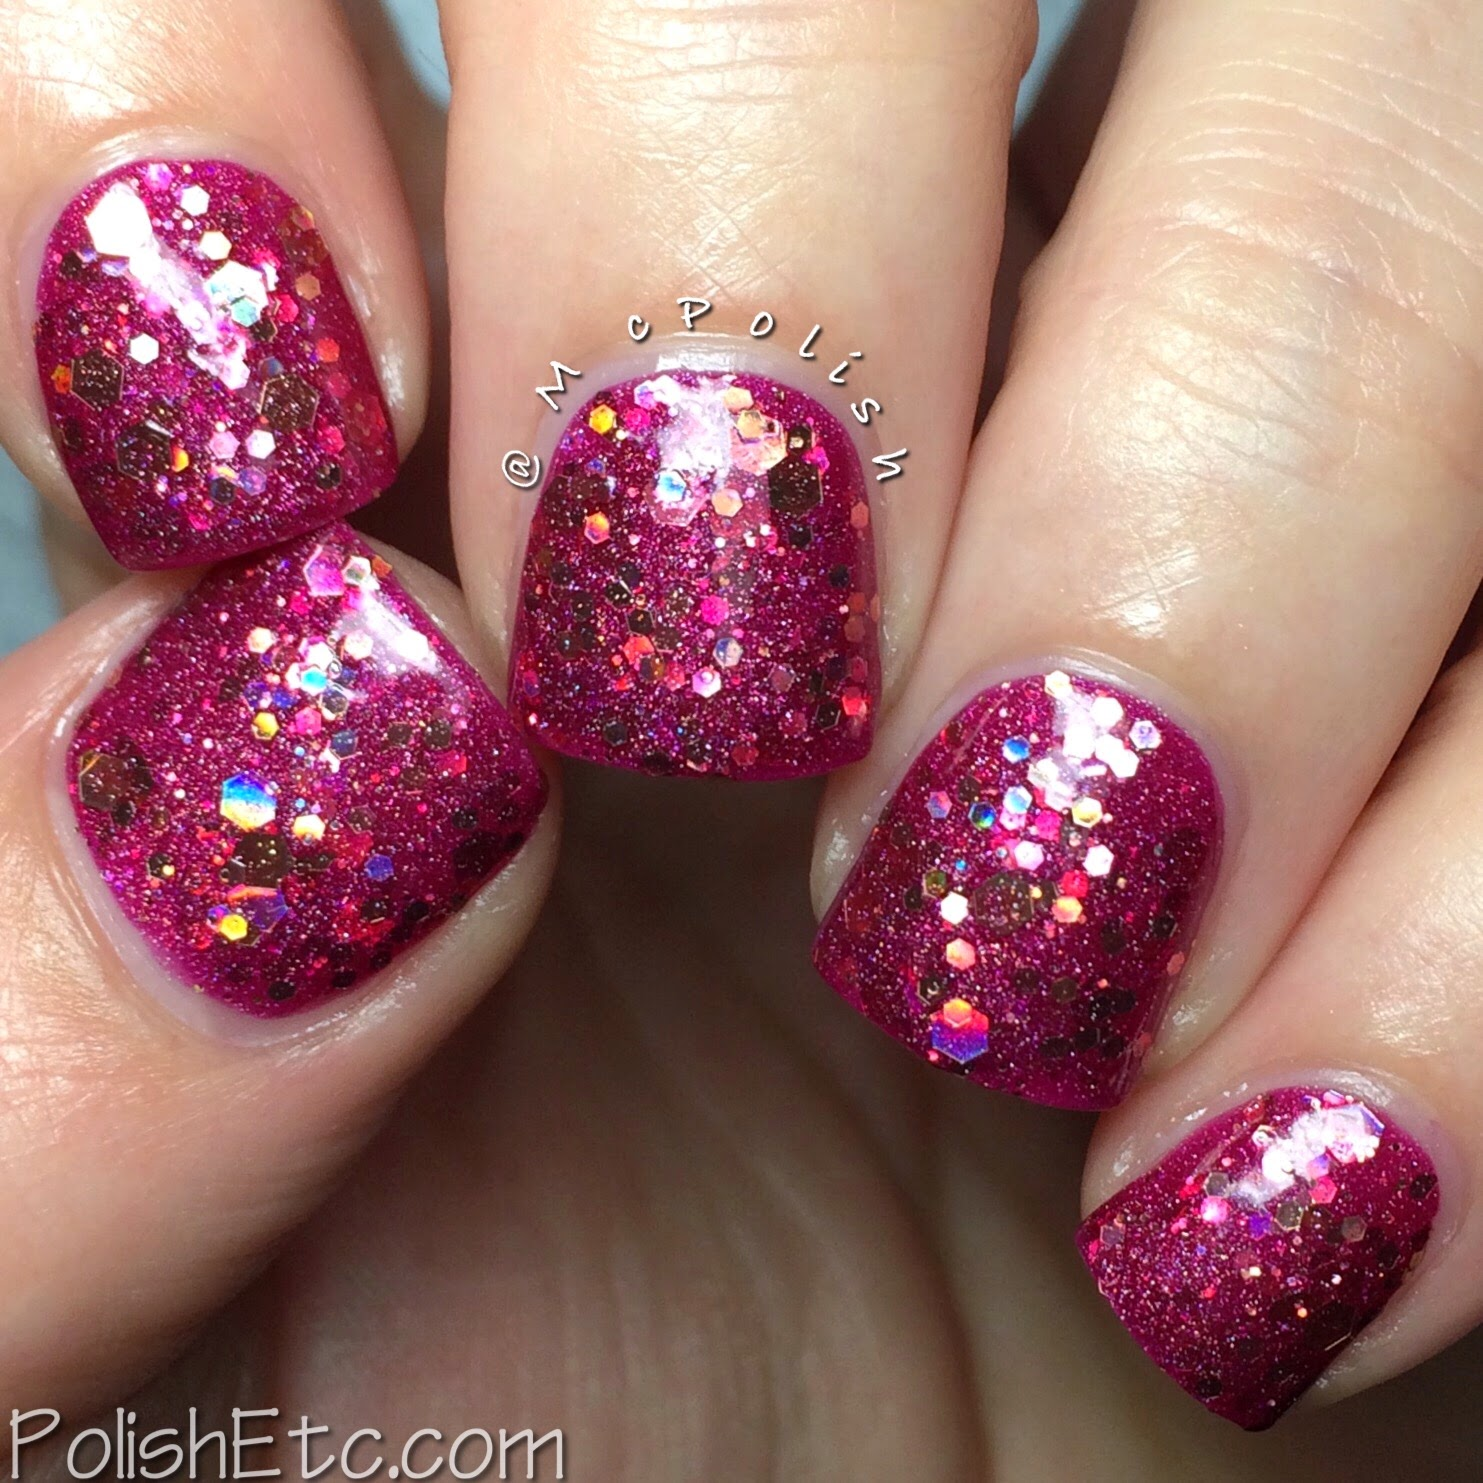 Nayll custom nail polishes - McPolish - Dawn